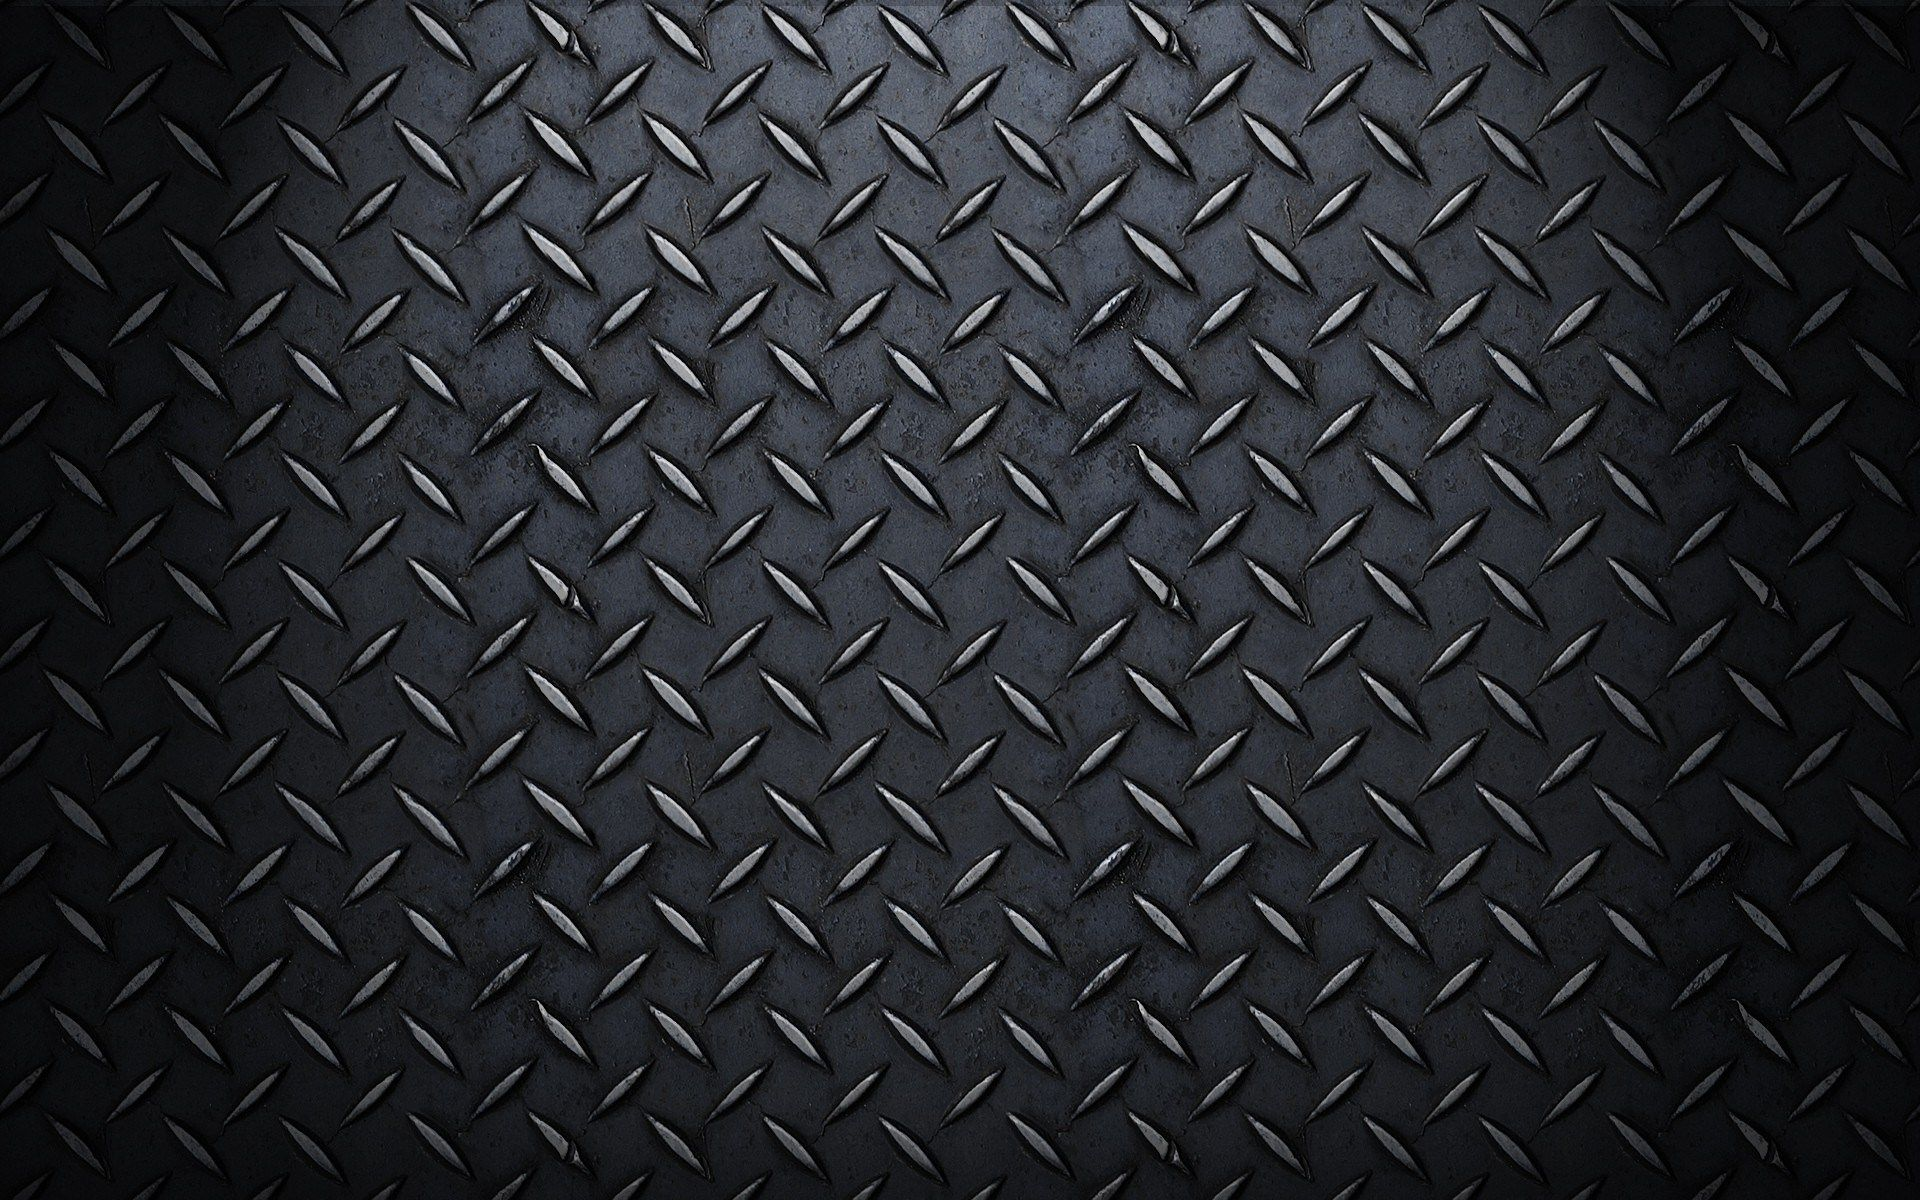 Carbon Fiber Wallpaper For Desktop Background 1920 X 1200 561 Kb Desain Seni Desain Stiker